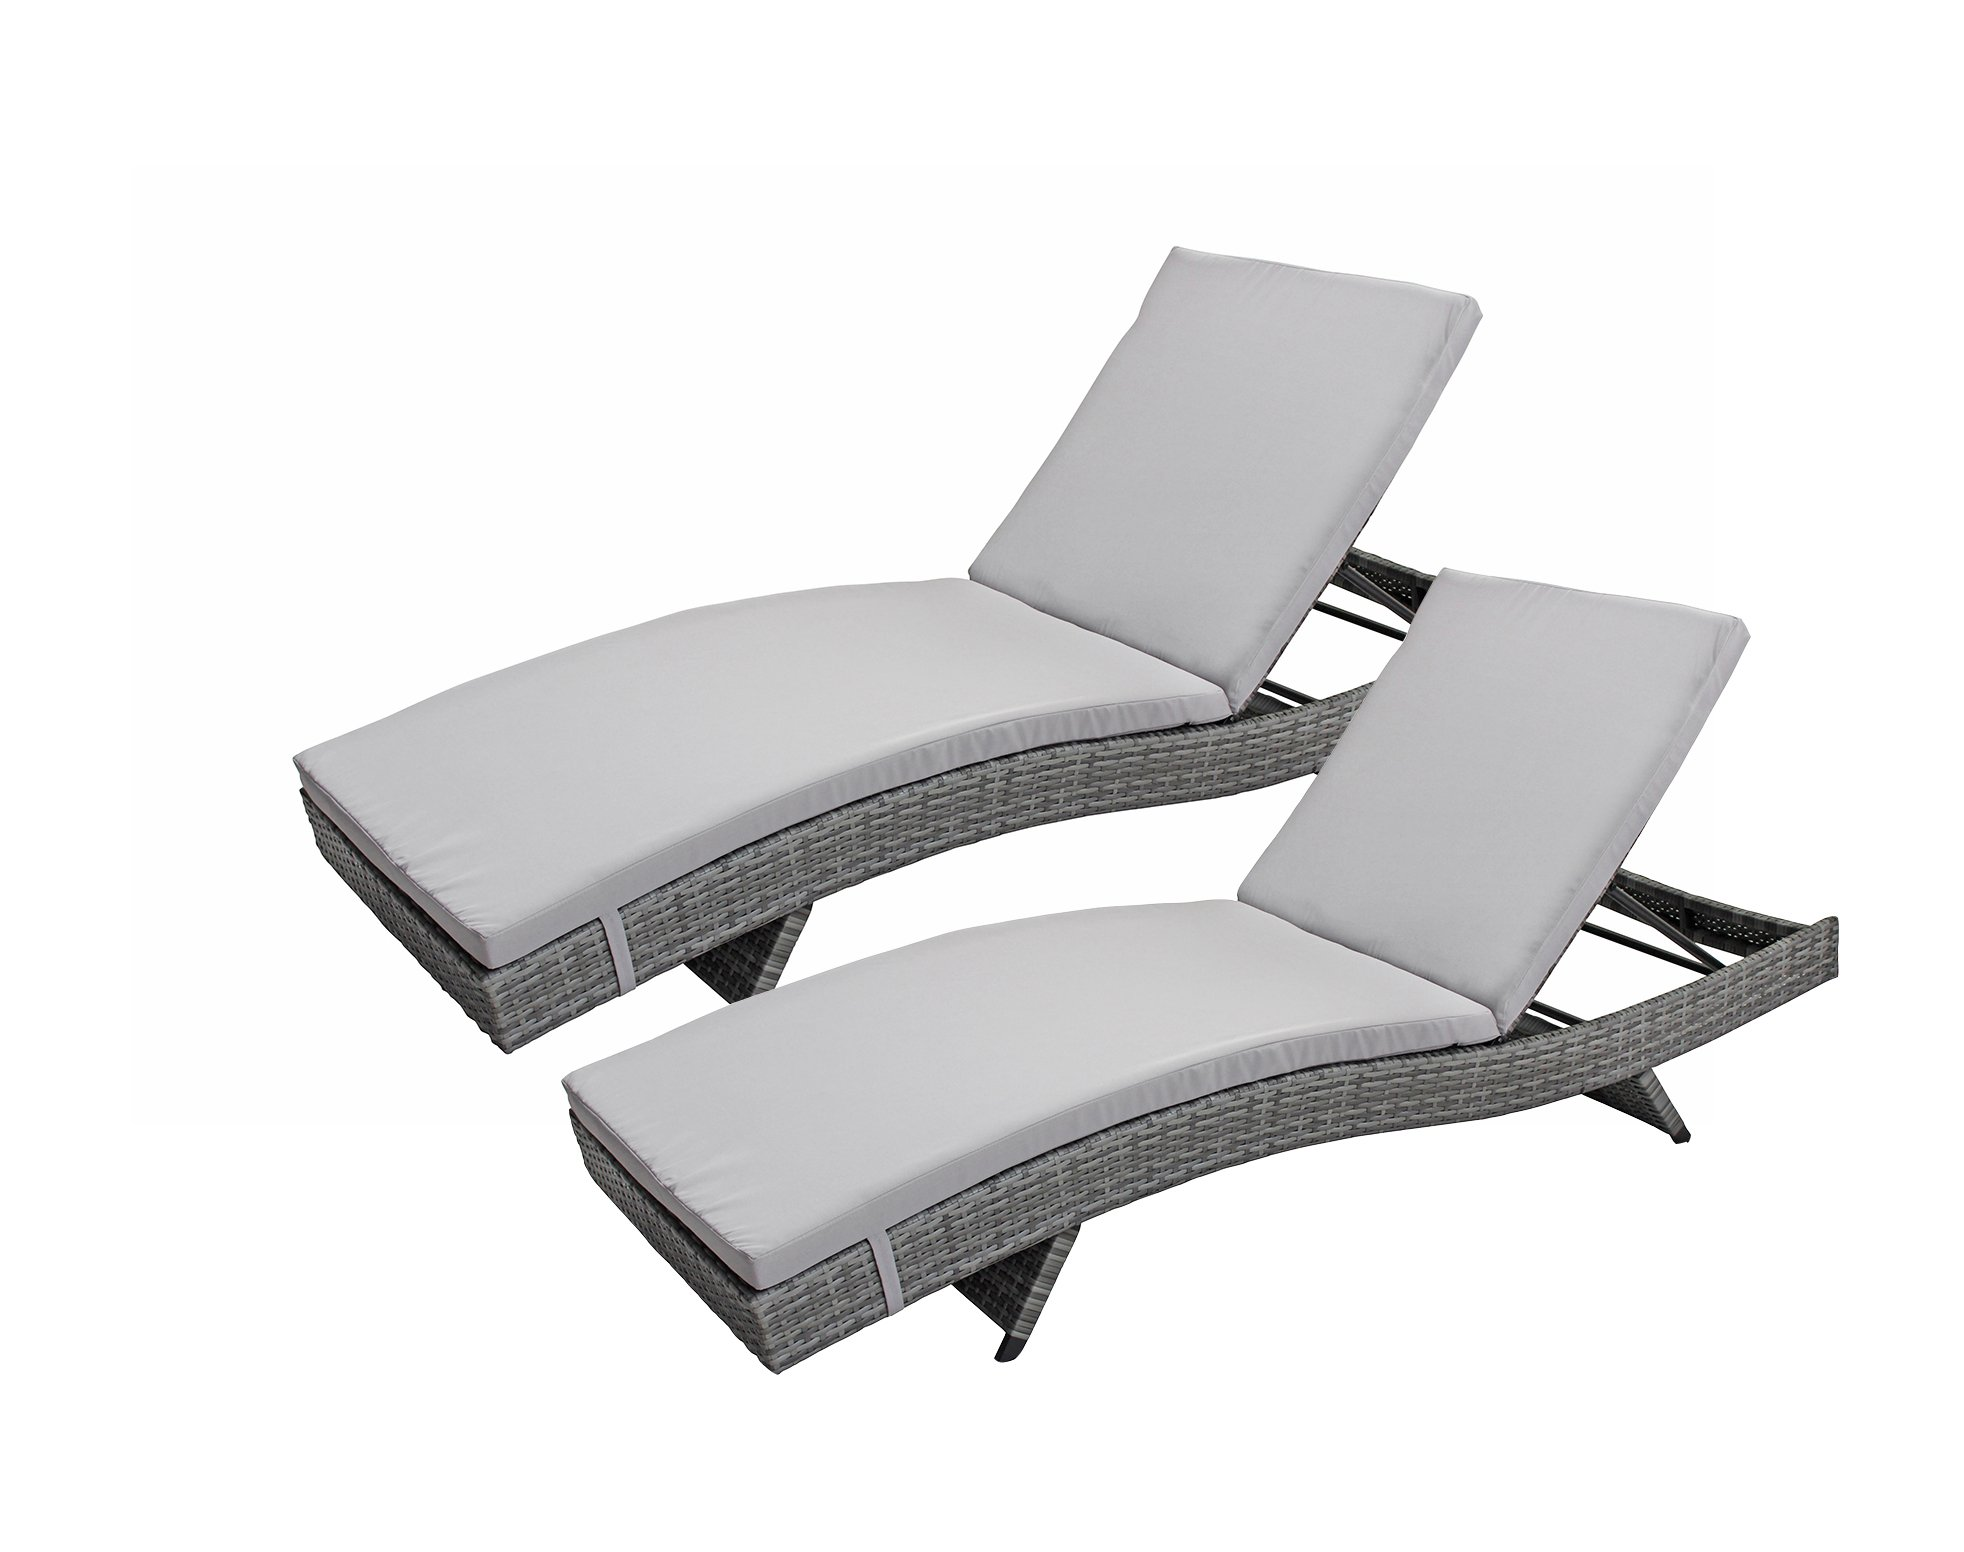 Divano Roma Furniture 2-Pack All-Weather Modern Outdoor Patio Chaise Lounge Chairs (Grey)